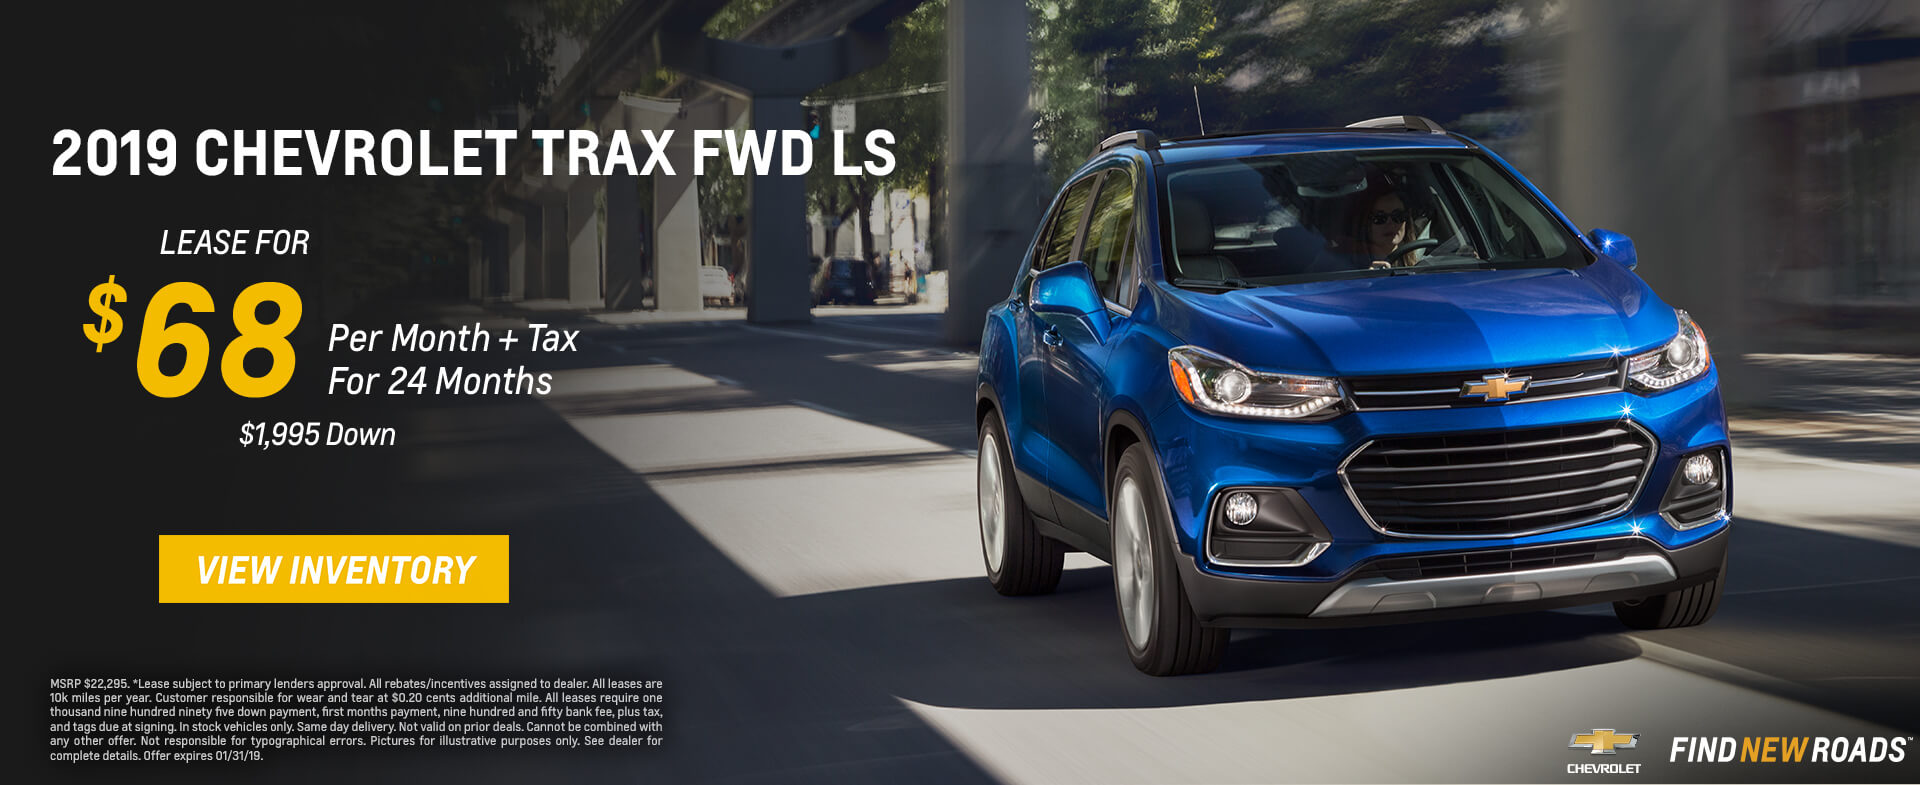 Chevrolet Trax $68 Lease